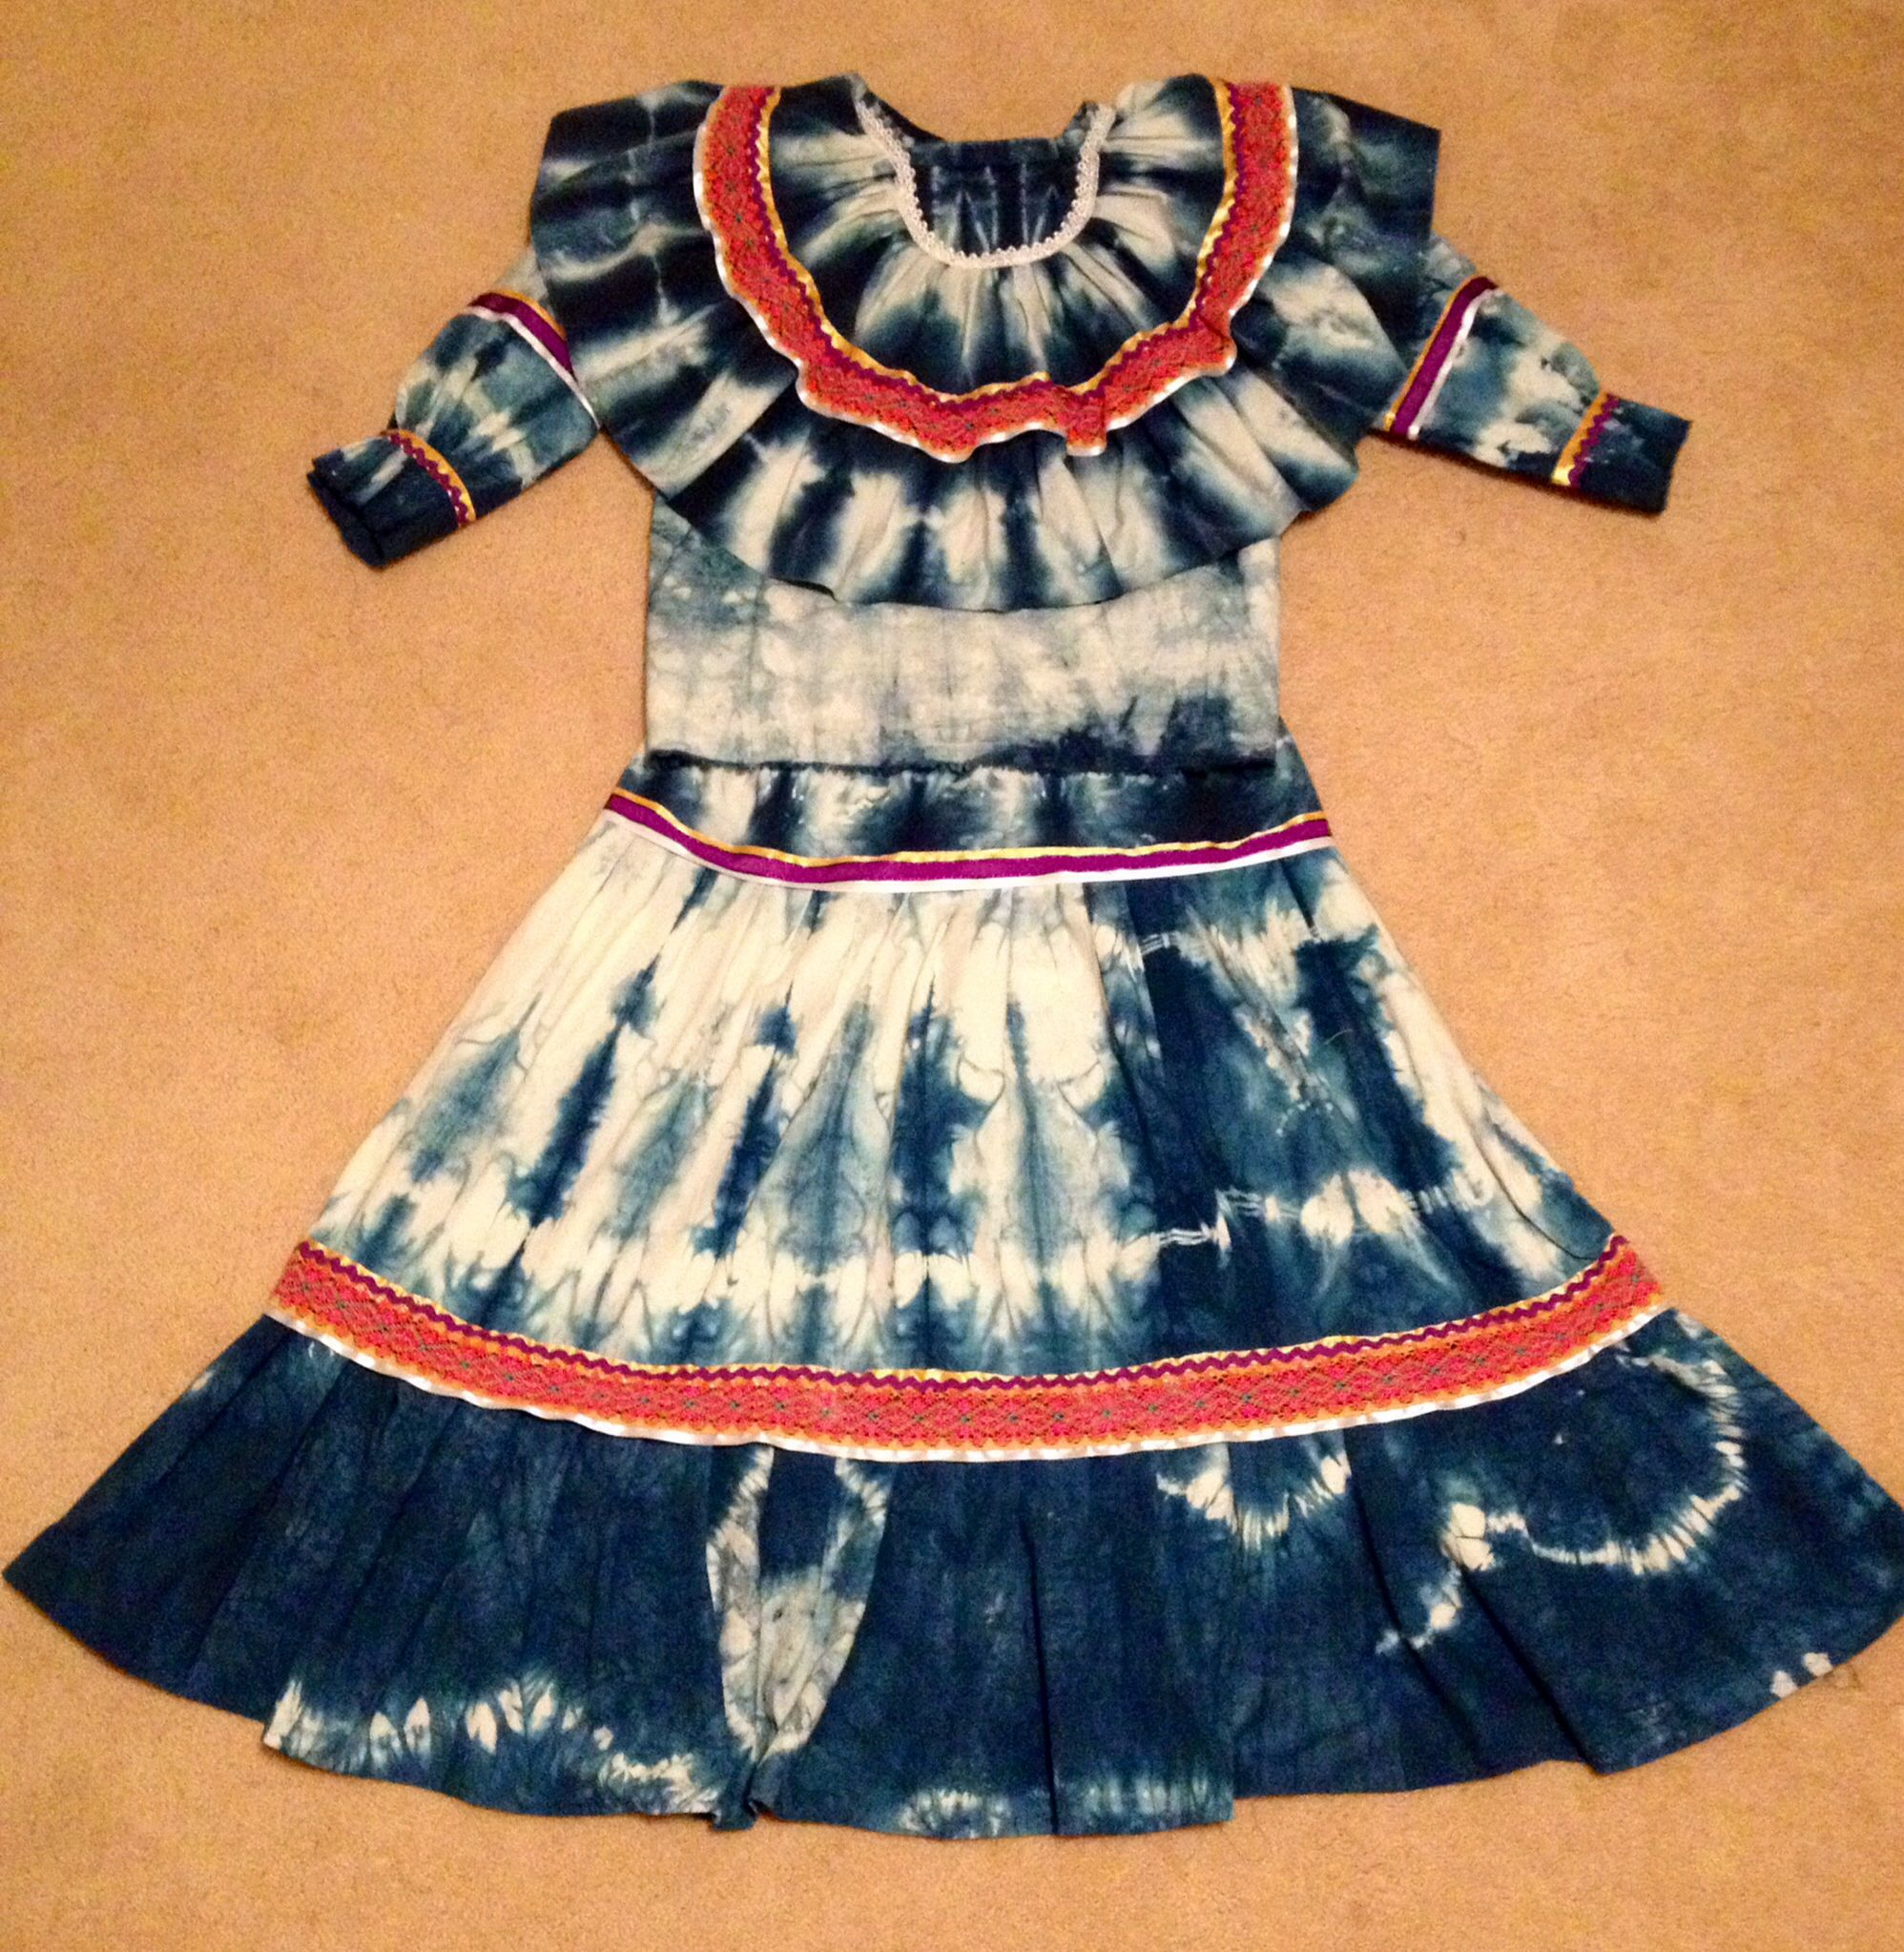 South Eastern Woodlands Stomp Dance Dress created by Pura Fe ...